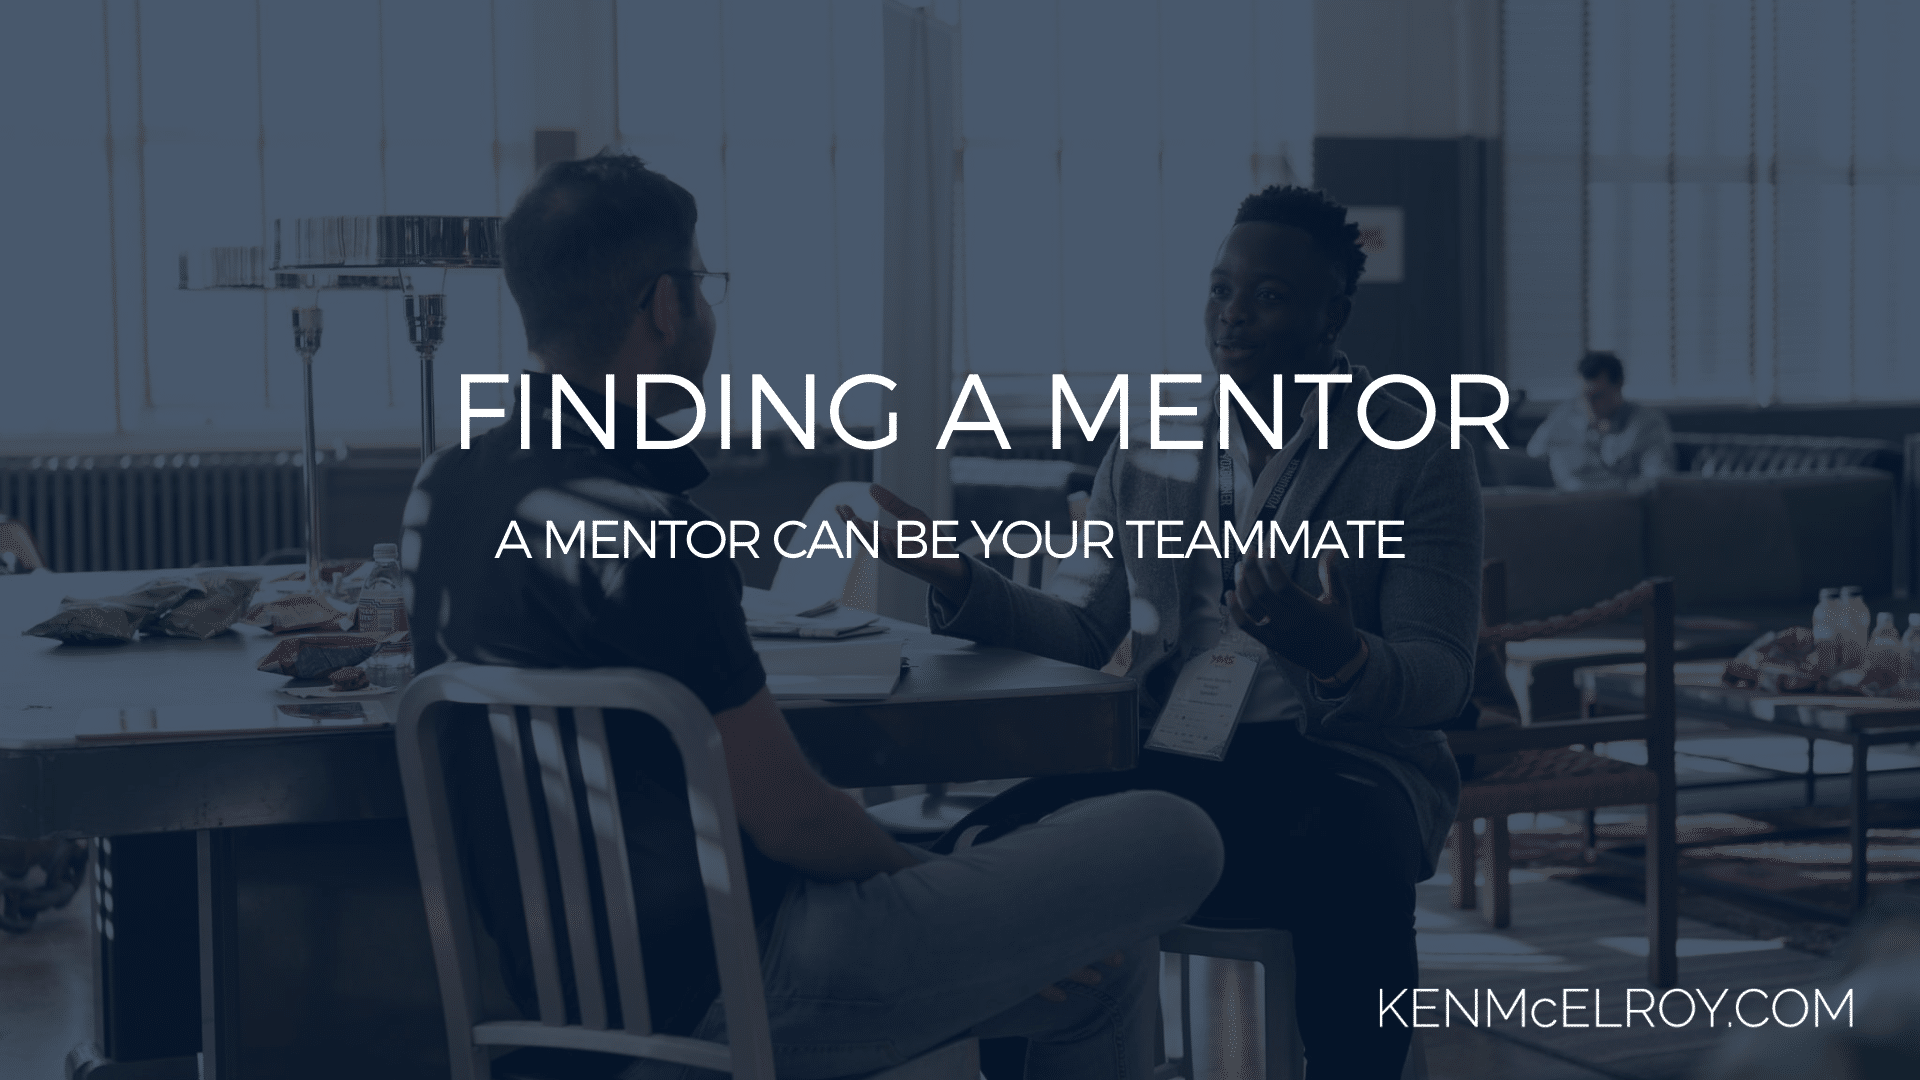 A mentor can be your teammate | Ken McElroy Image